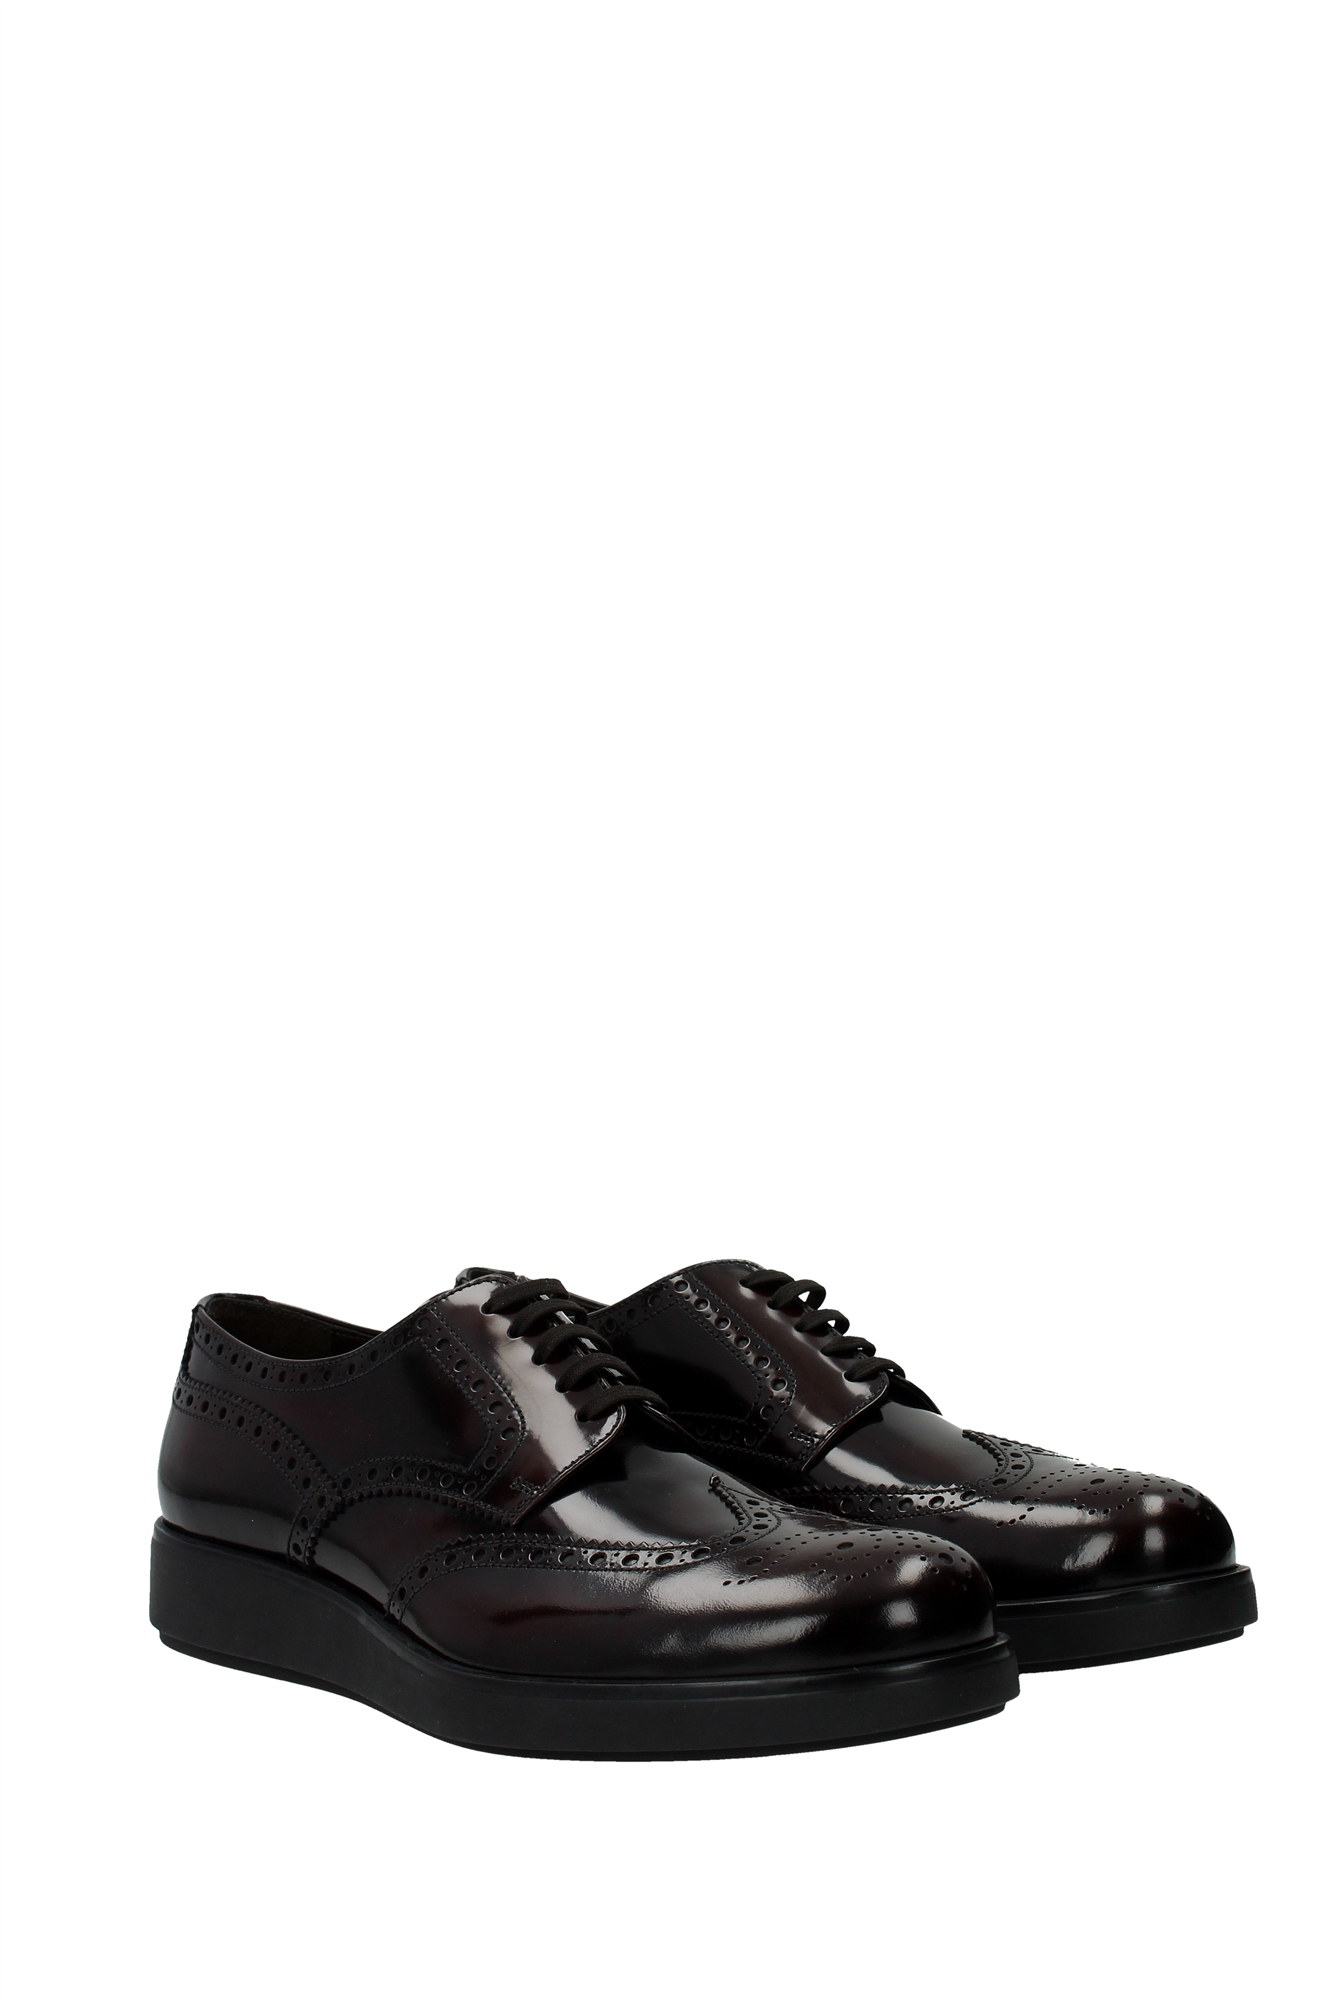 prada in mens shoes ebay lace up shoes prada leather